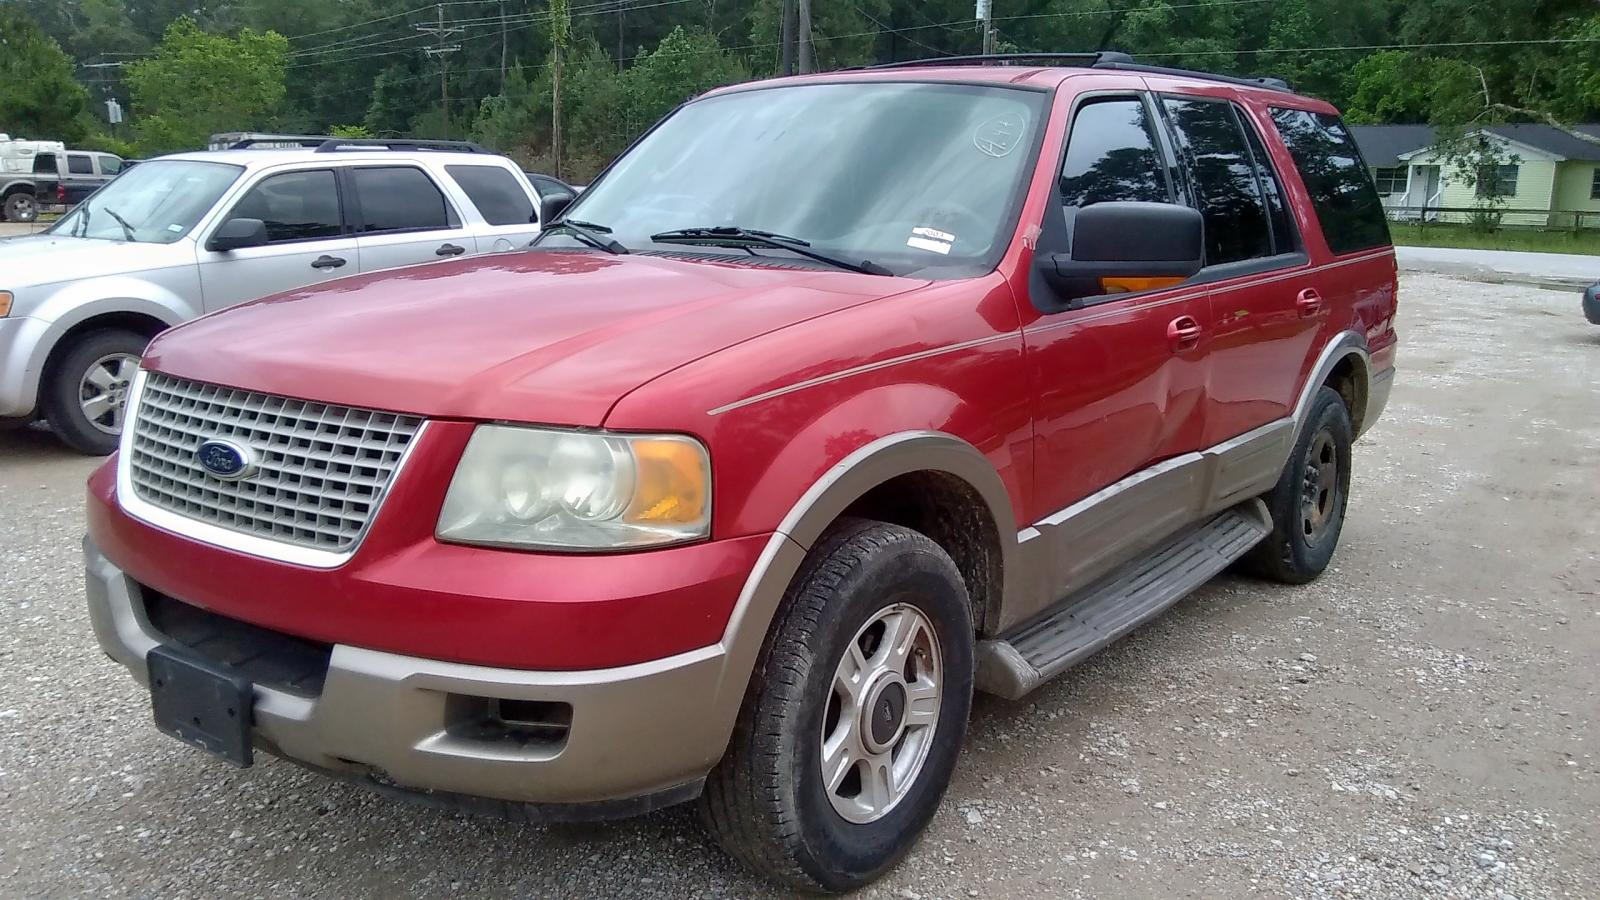 1FMFU17L23LC48298 - 2003 Ford Expedition 5.4L Right View